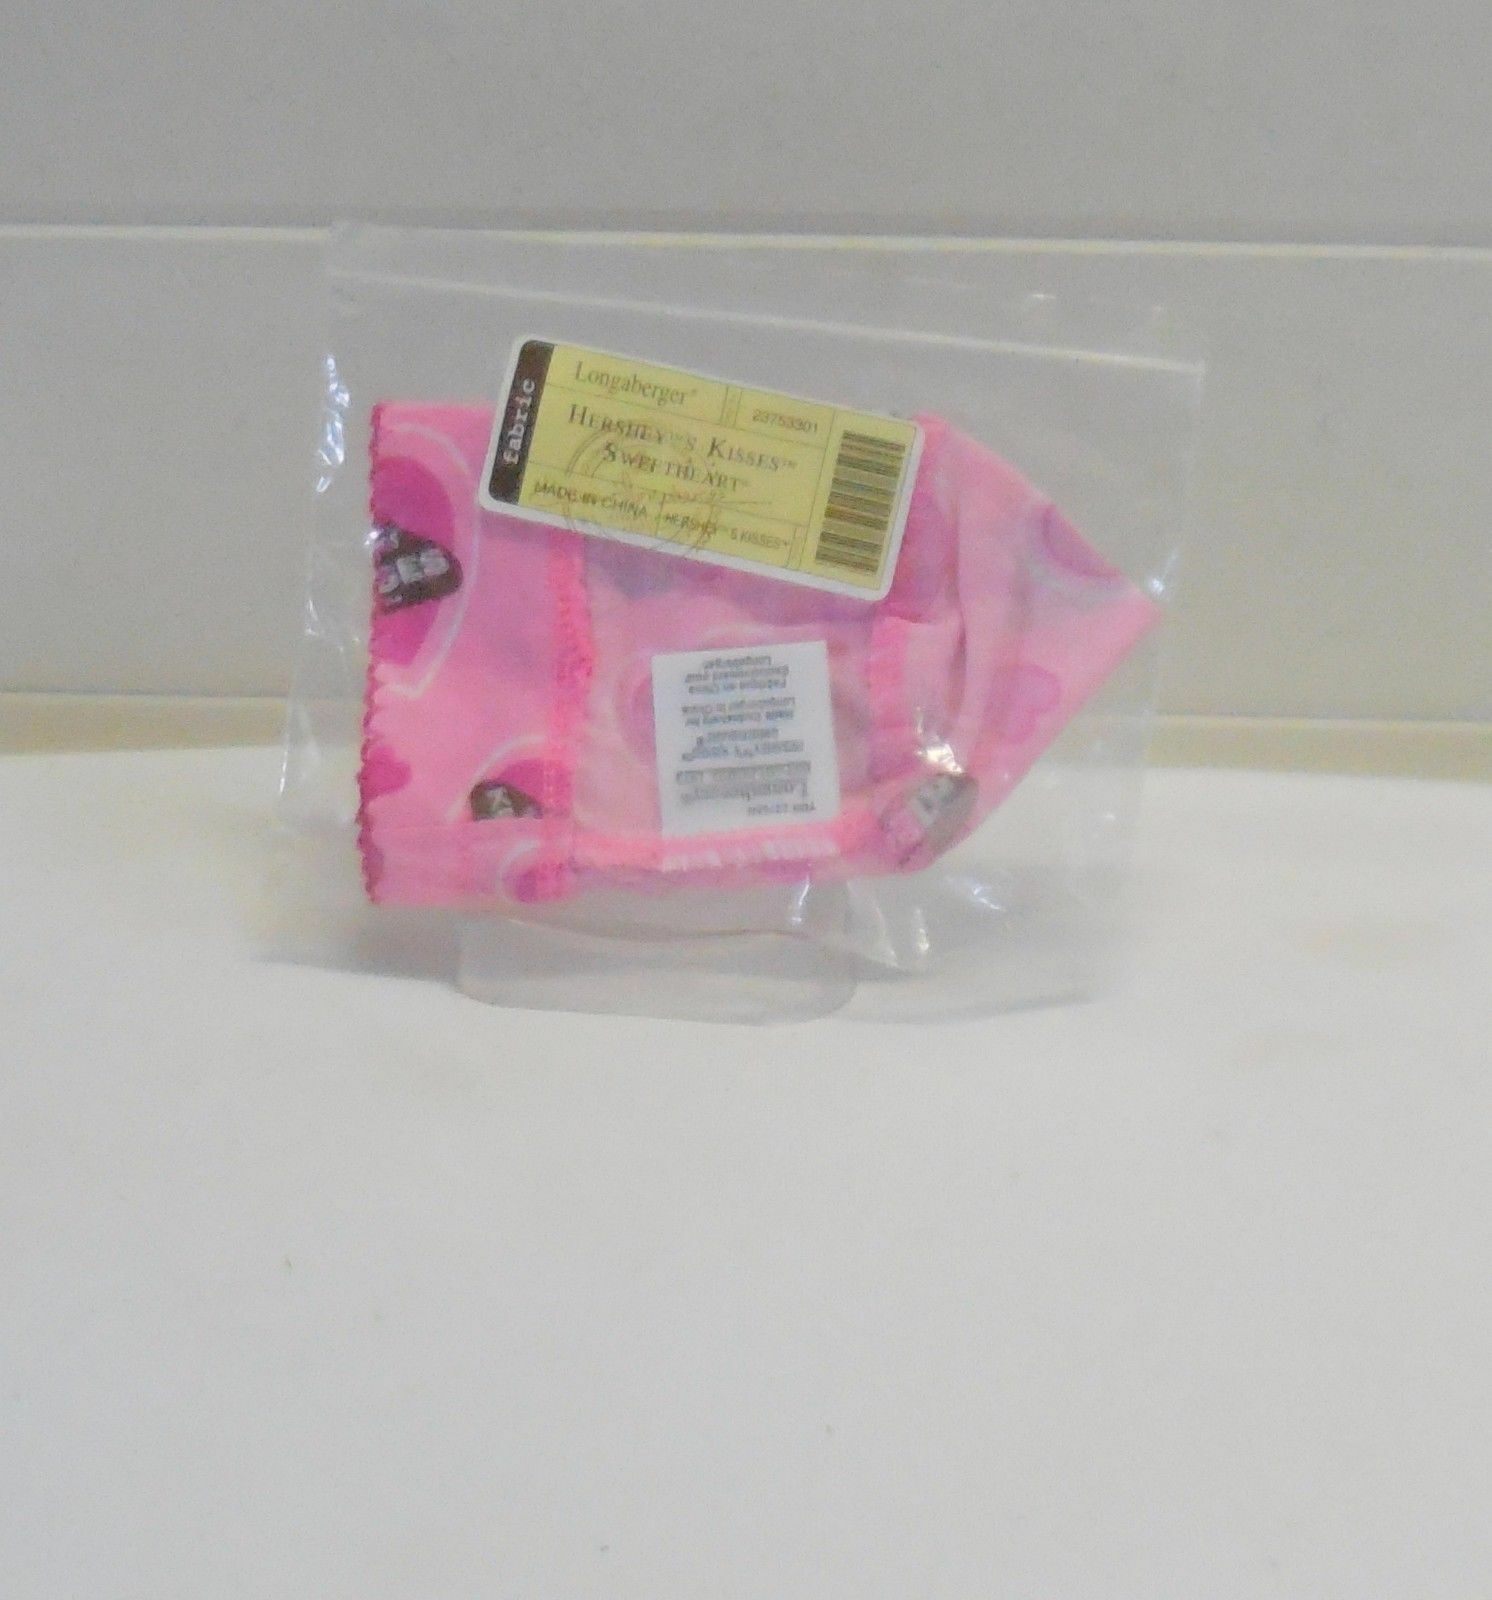 Primary image for Longaberger 2009 Hershey Kisses Trinket Bag Liner Only Pink Valentines